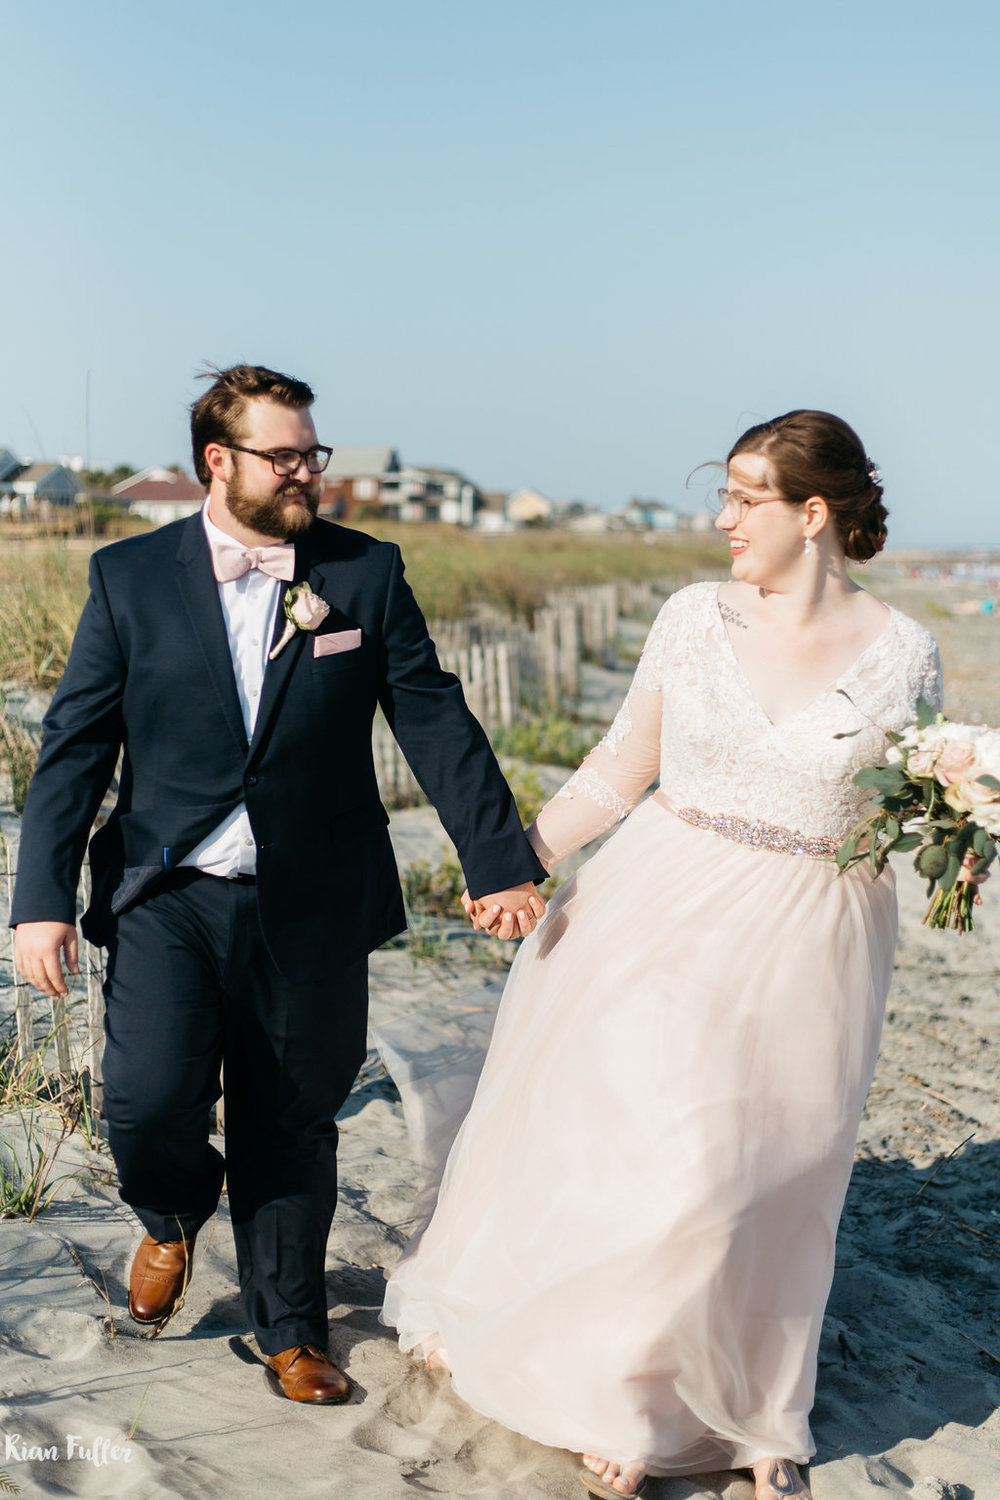 Plus Size Bride & Groom Portrait | Rian Fuller Photography